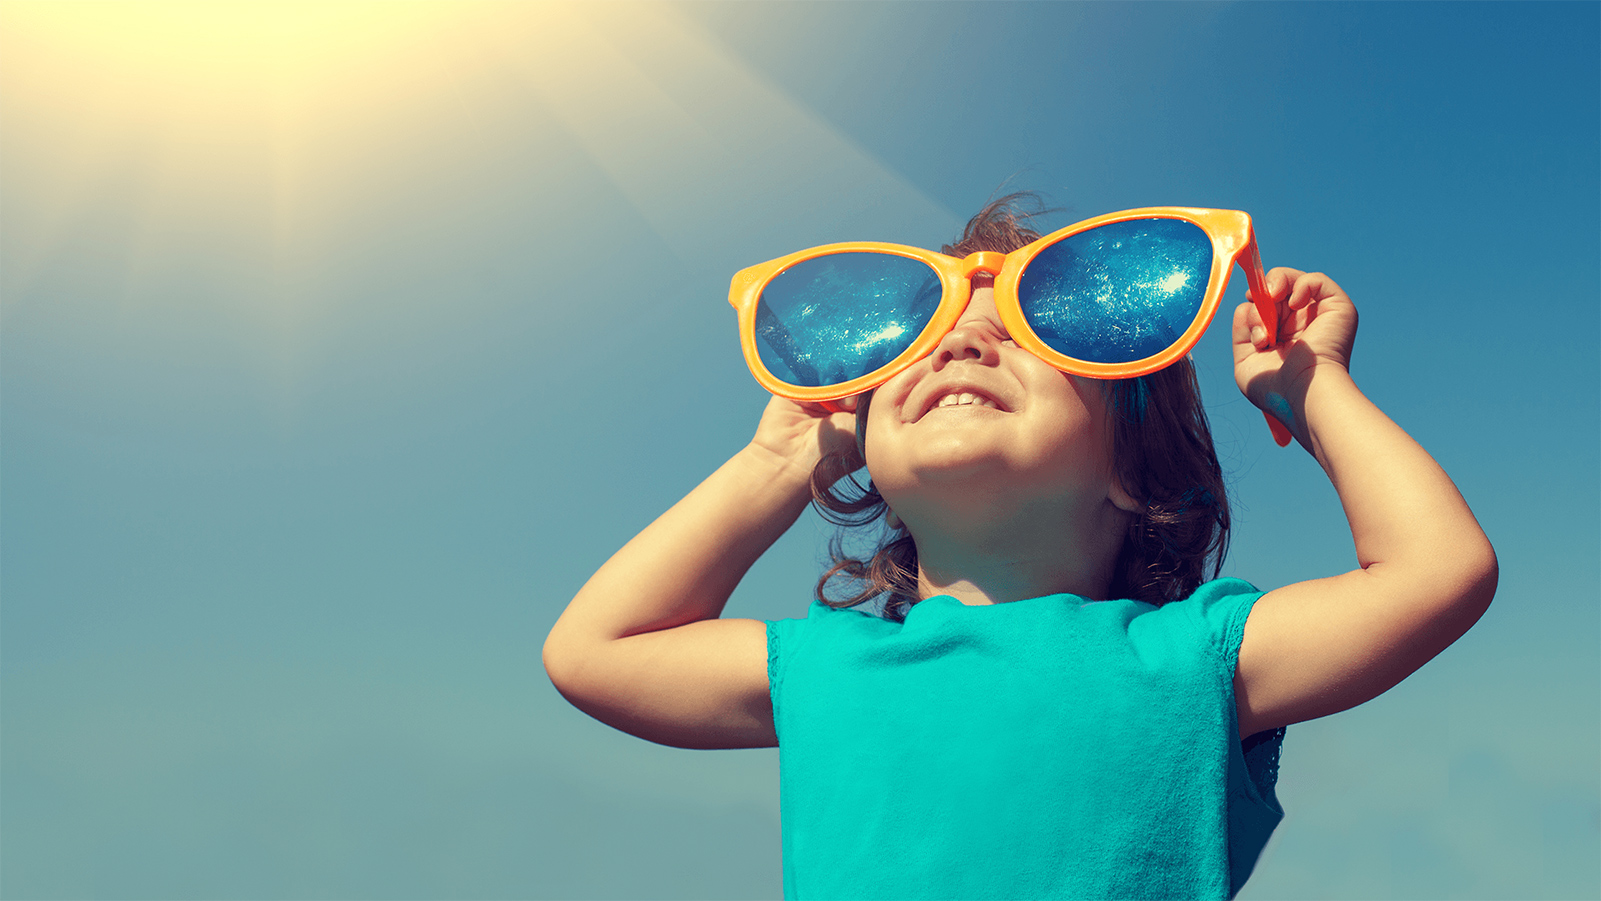 Little girl wearing oversized sunglasses on a bright sunny day.